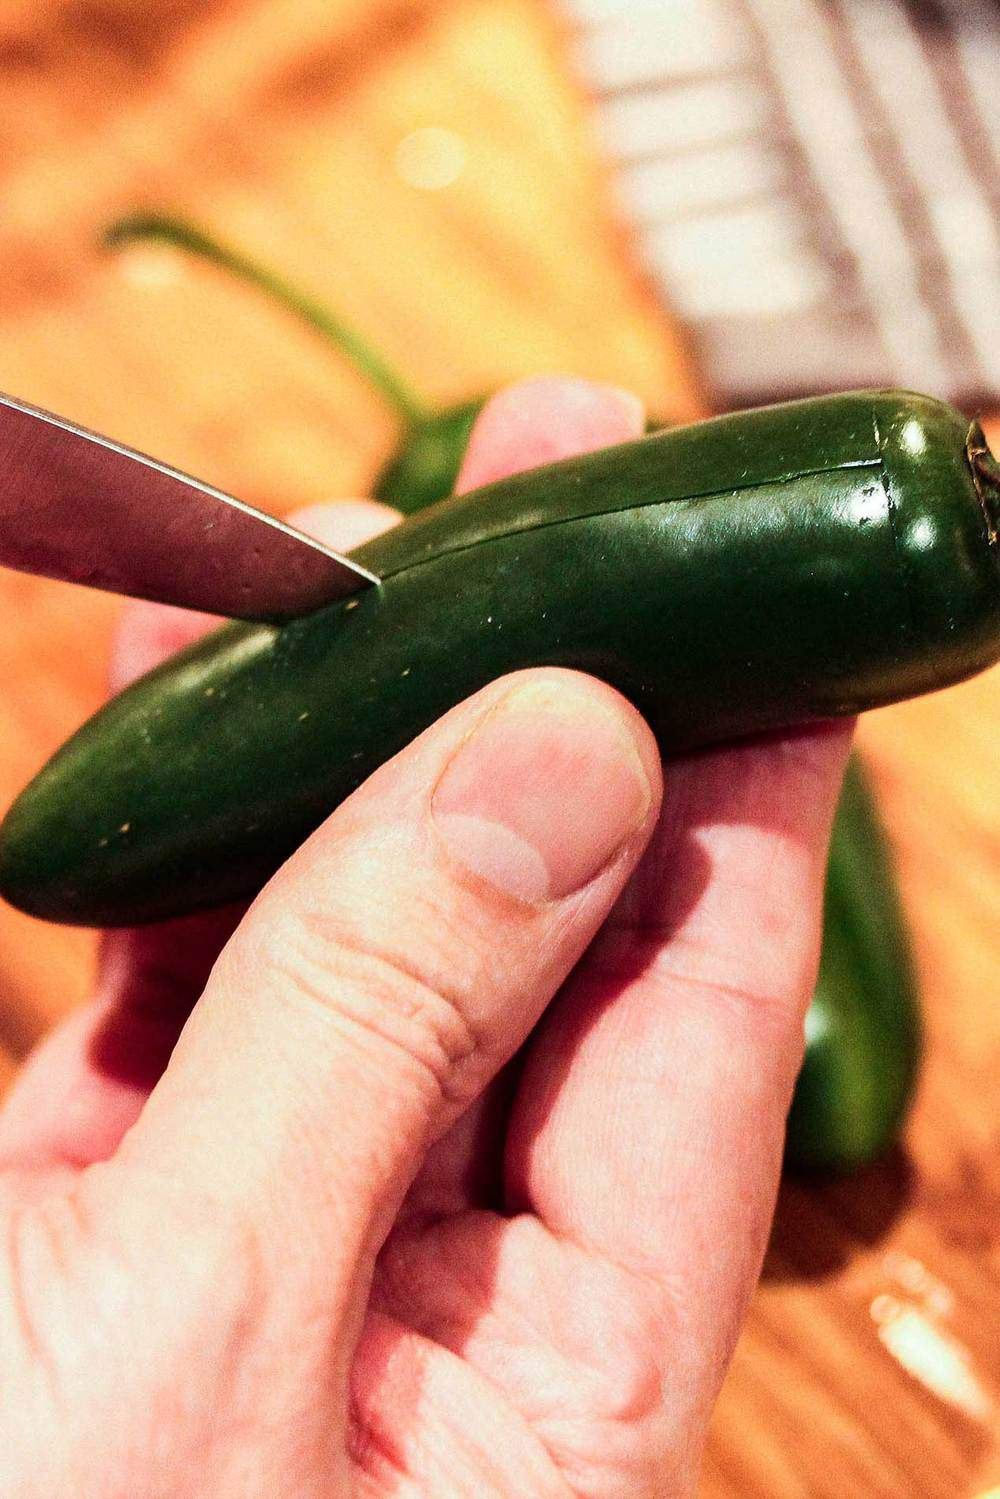 Knife slitting down a fresh Jalapeño